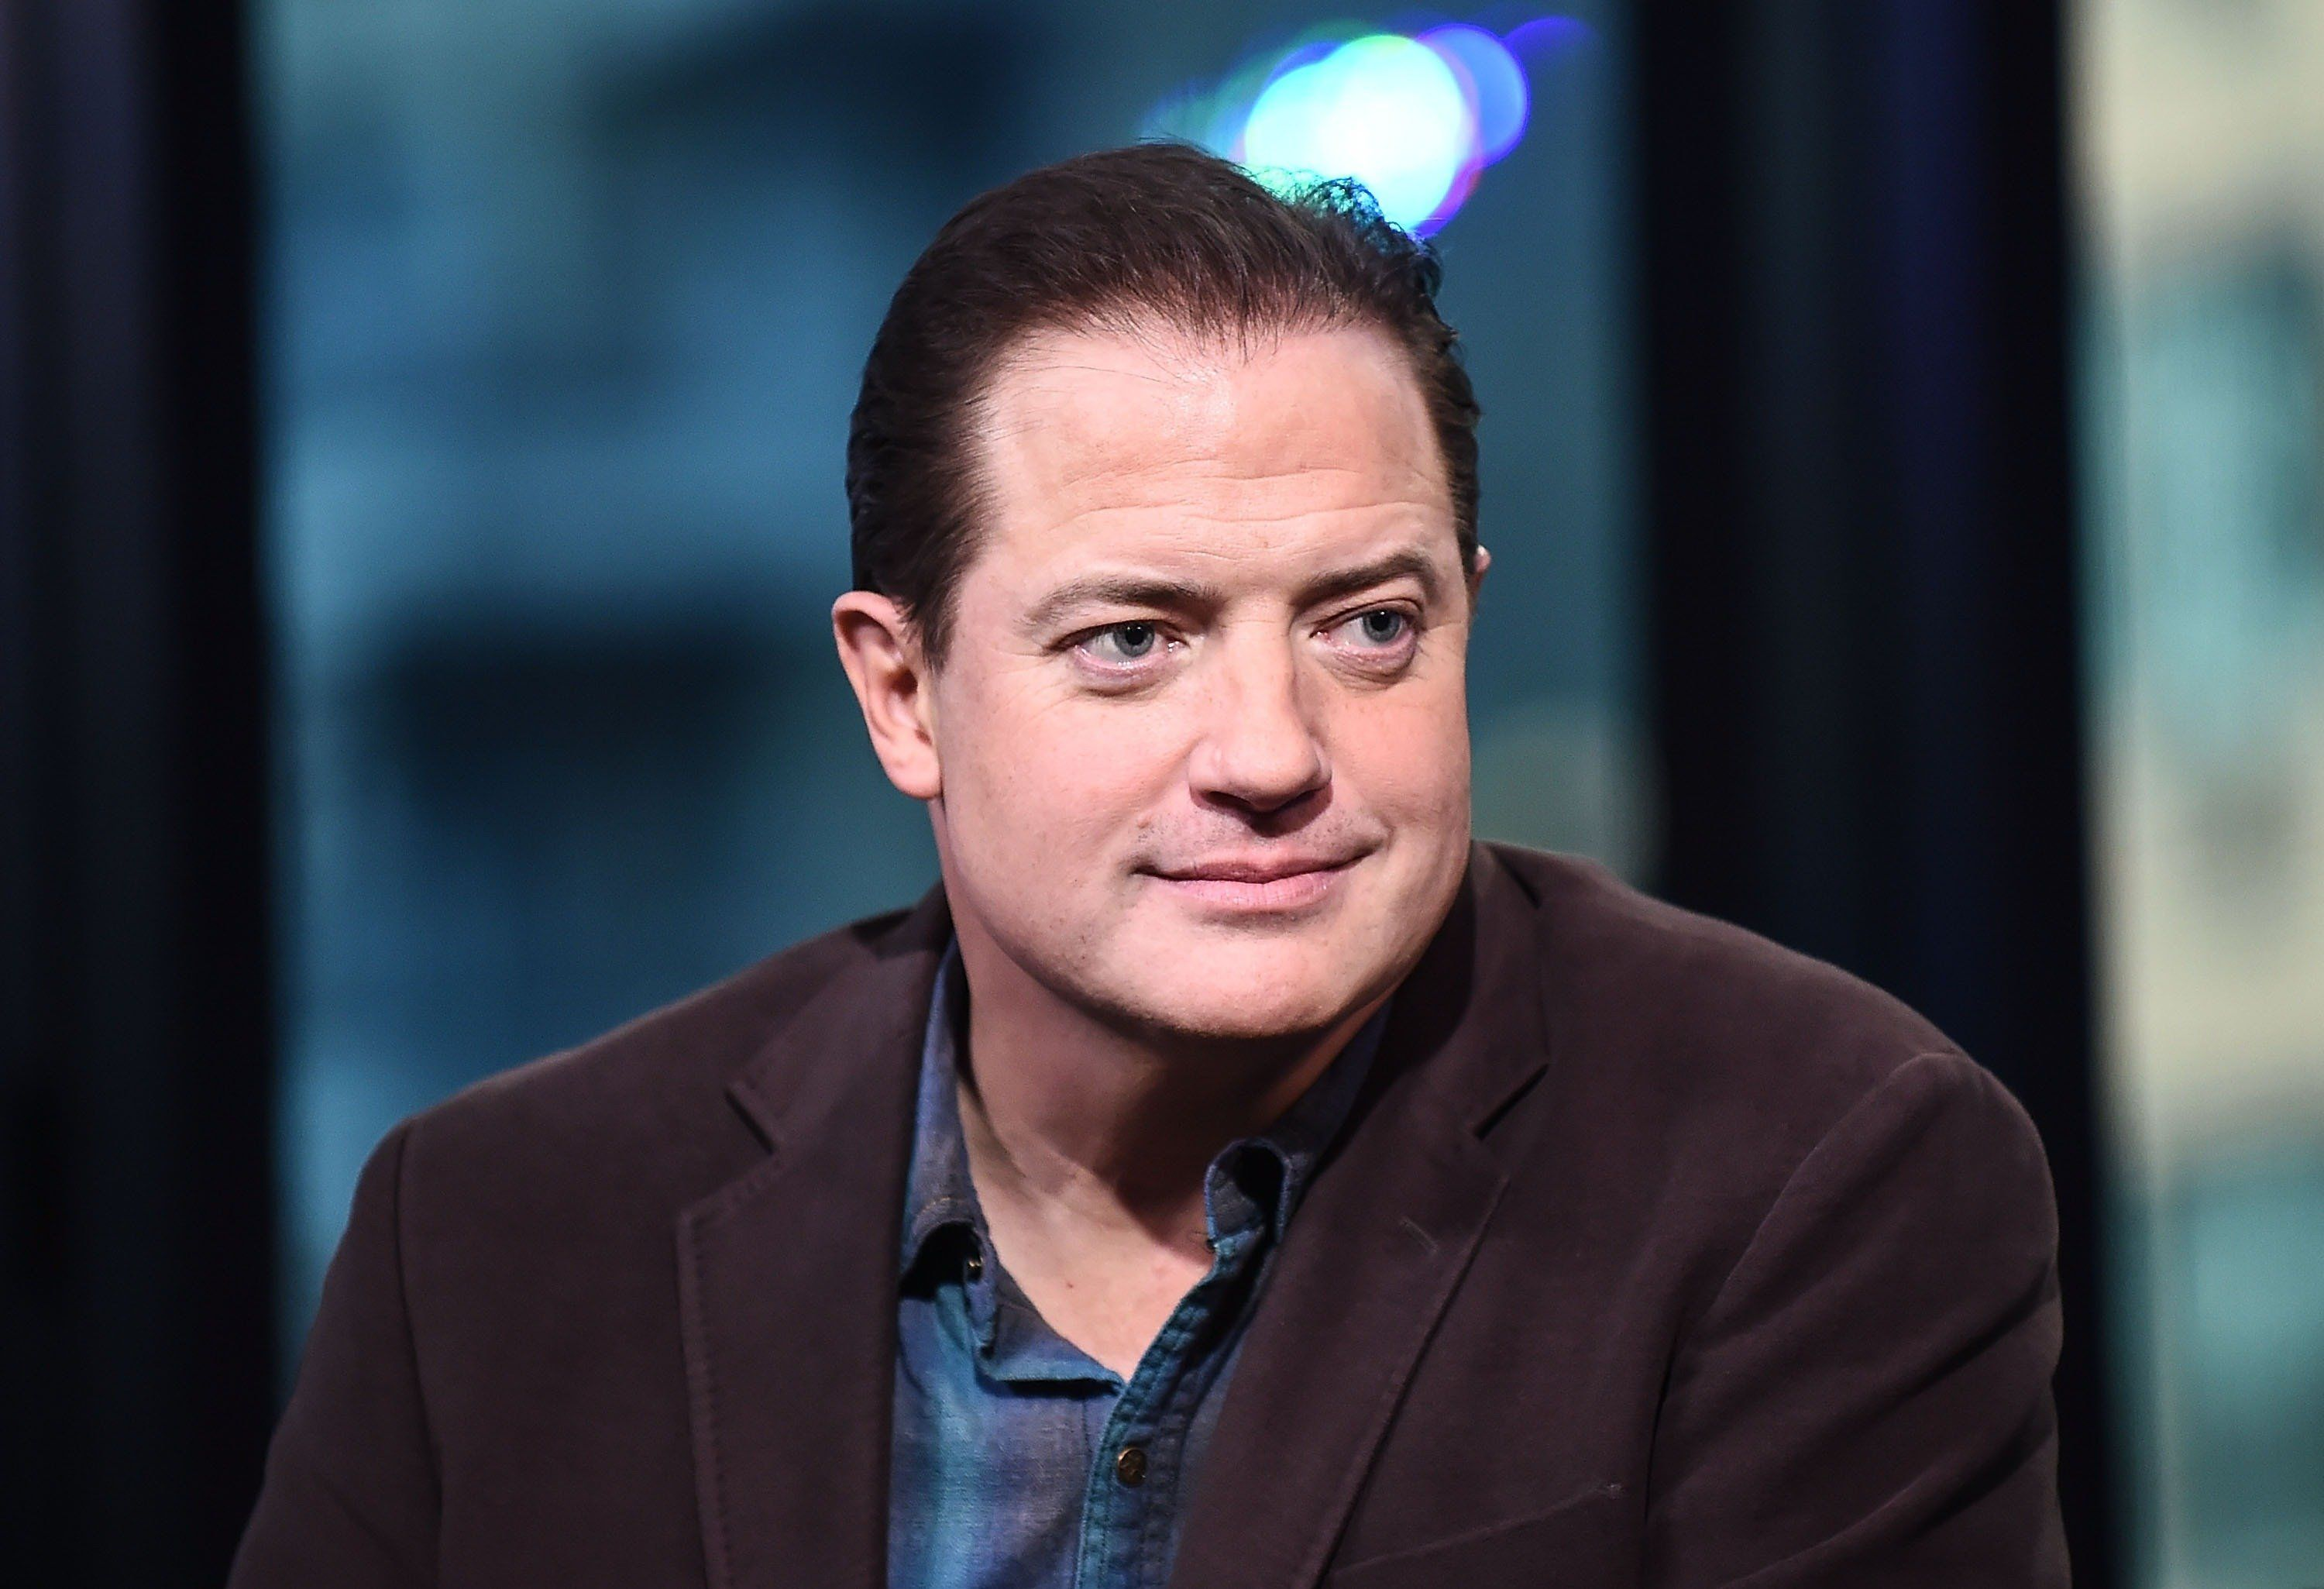 Brendan Fraser Says HFPA Wanted Him To Agree Alleged Sexual Assault Was 'A Joke', Not 'An